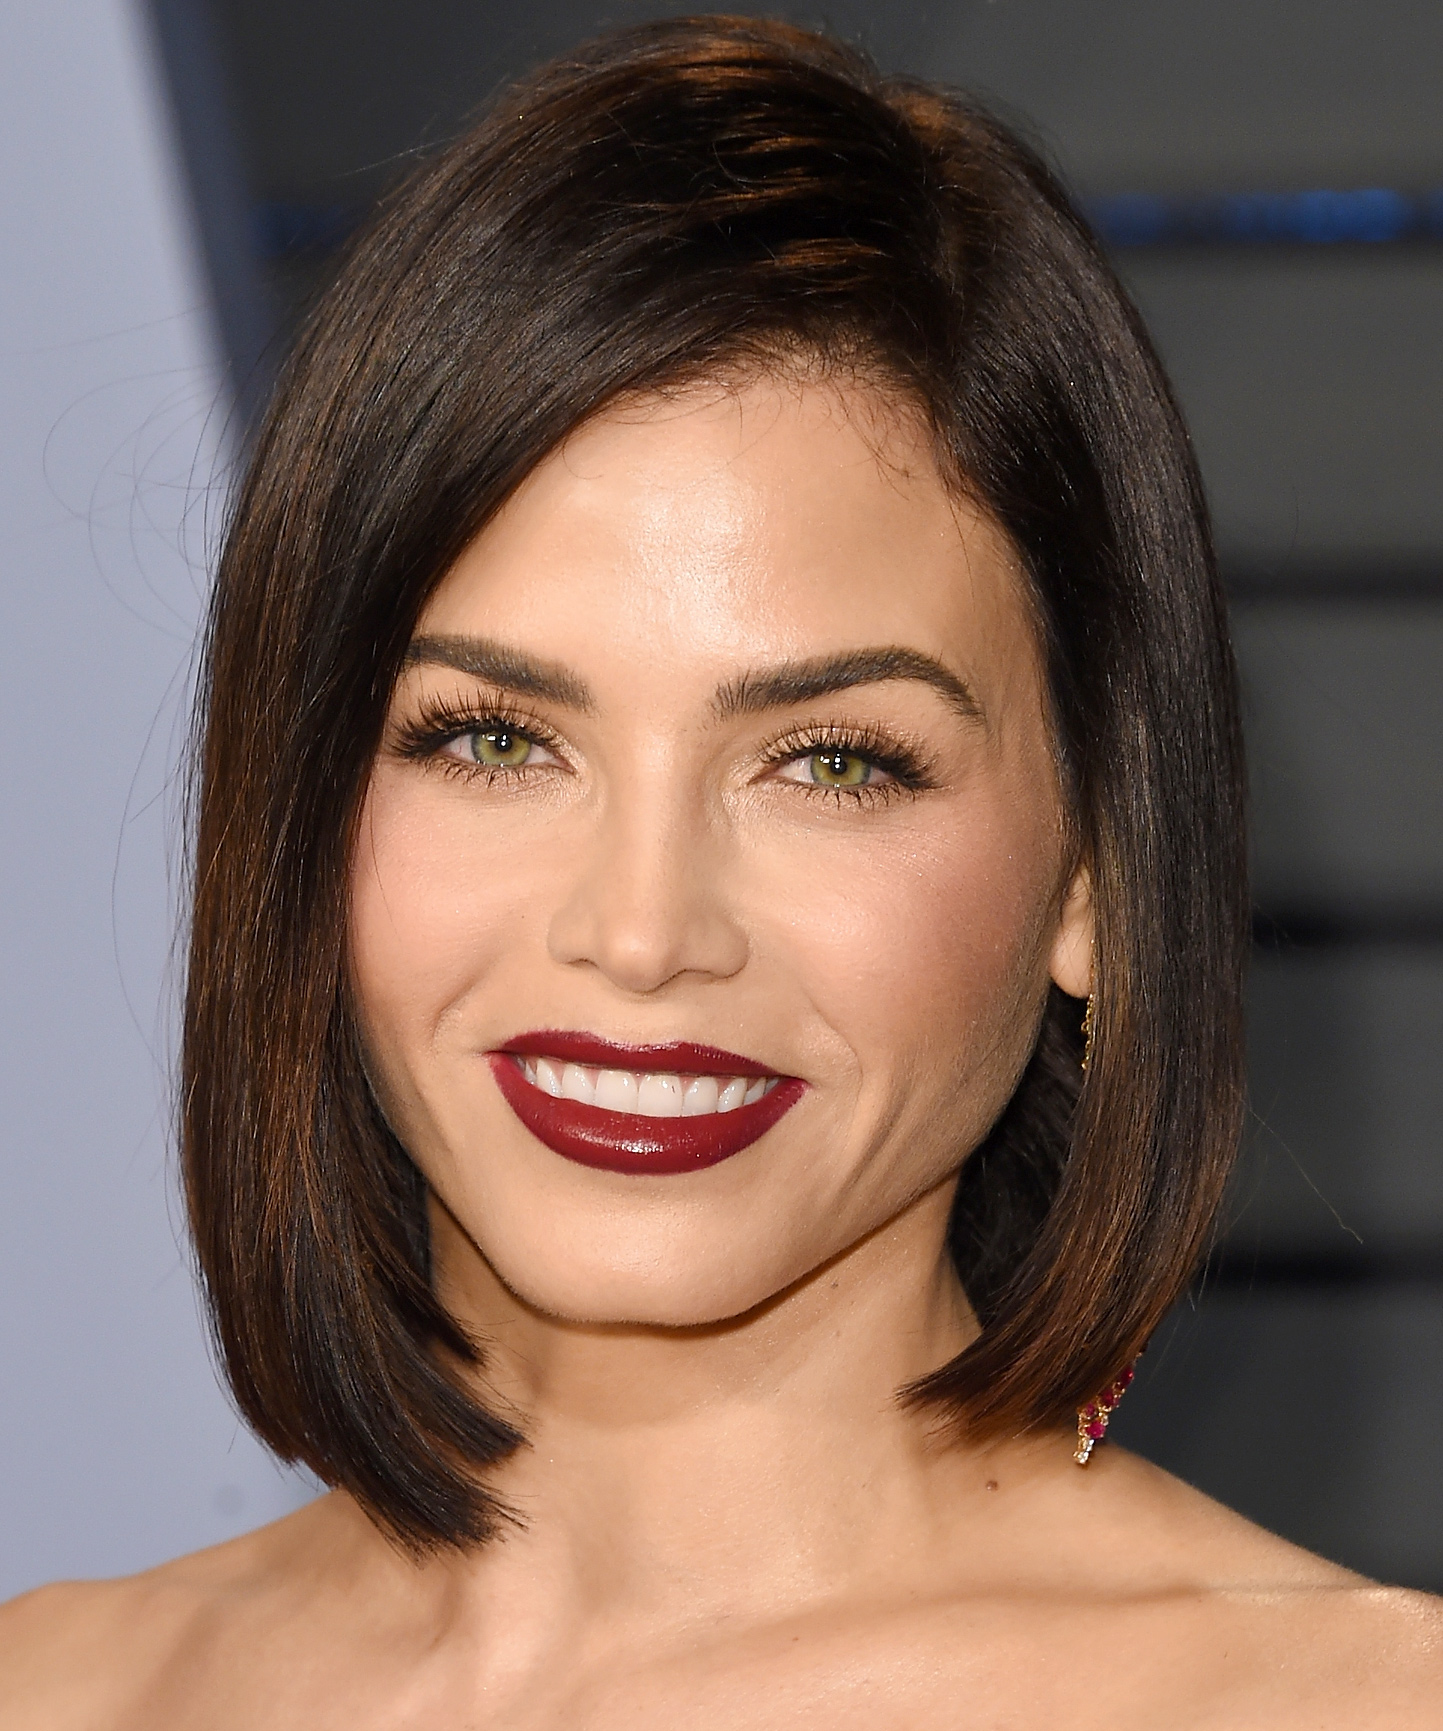 25 Long Bob Haircut and Long Lob Styles We Love | InStyle.com